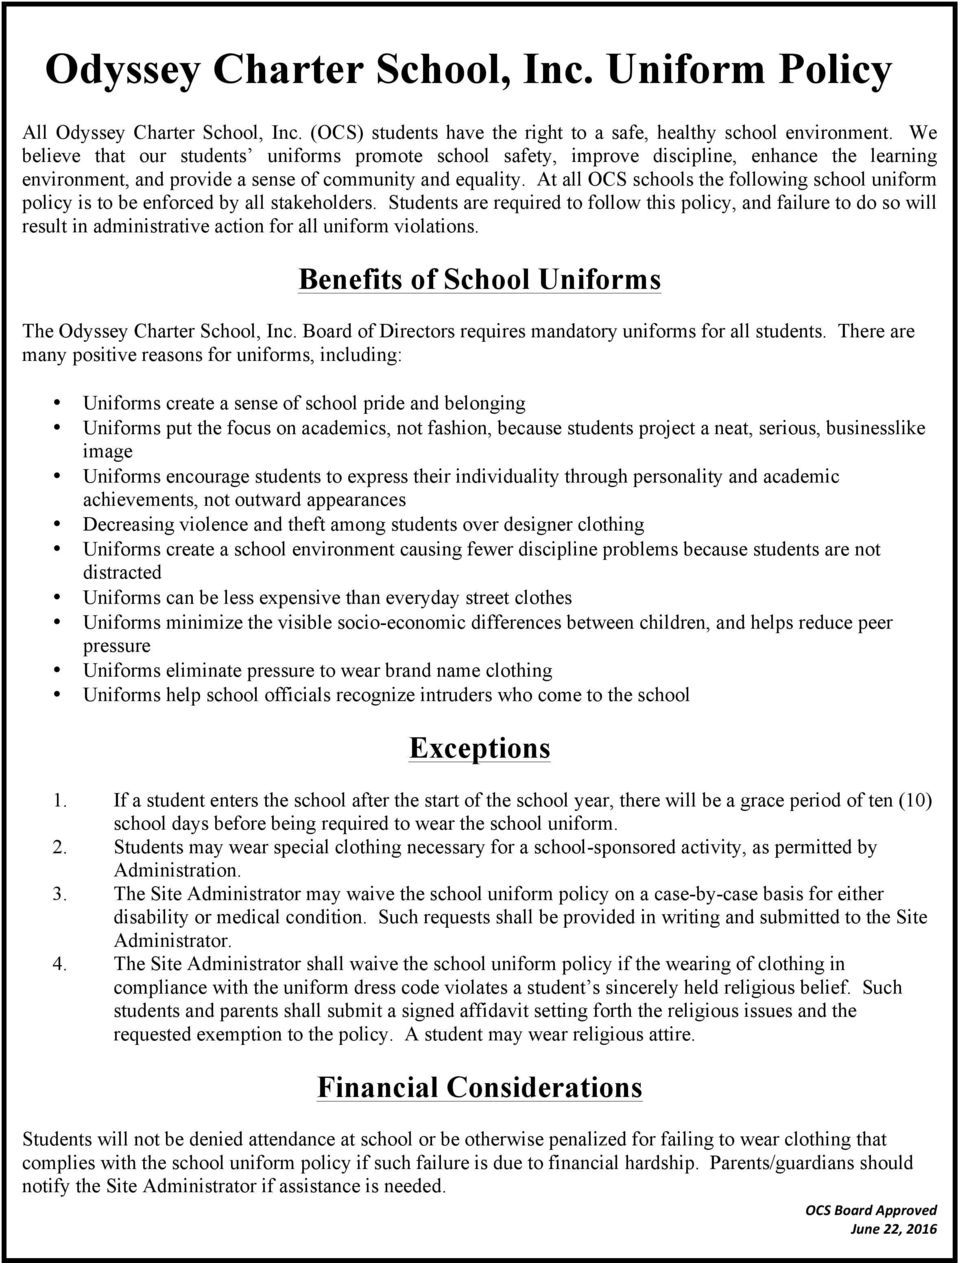 At all OCS schools the following school uniform policy is to be enforced by all stakeholders.